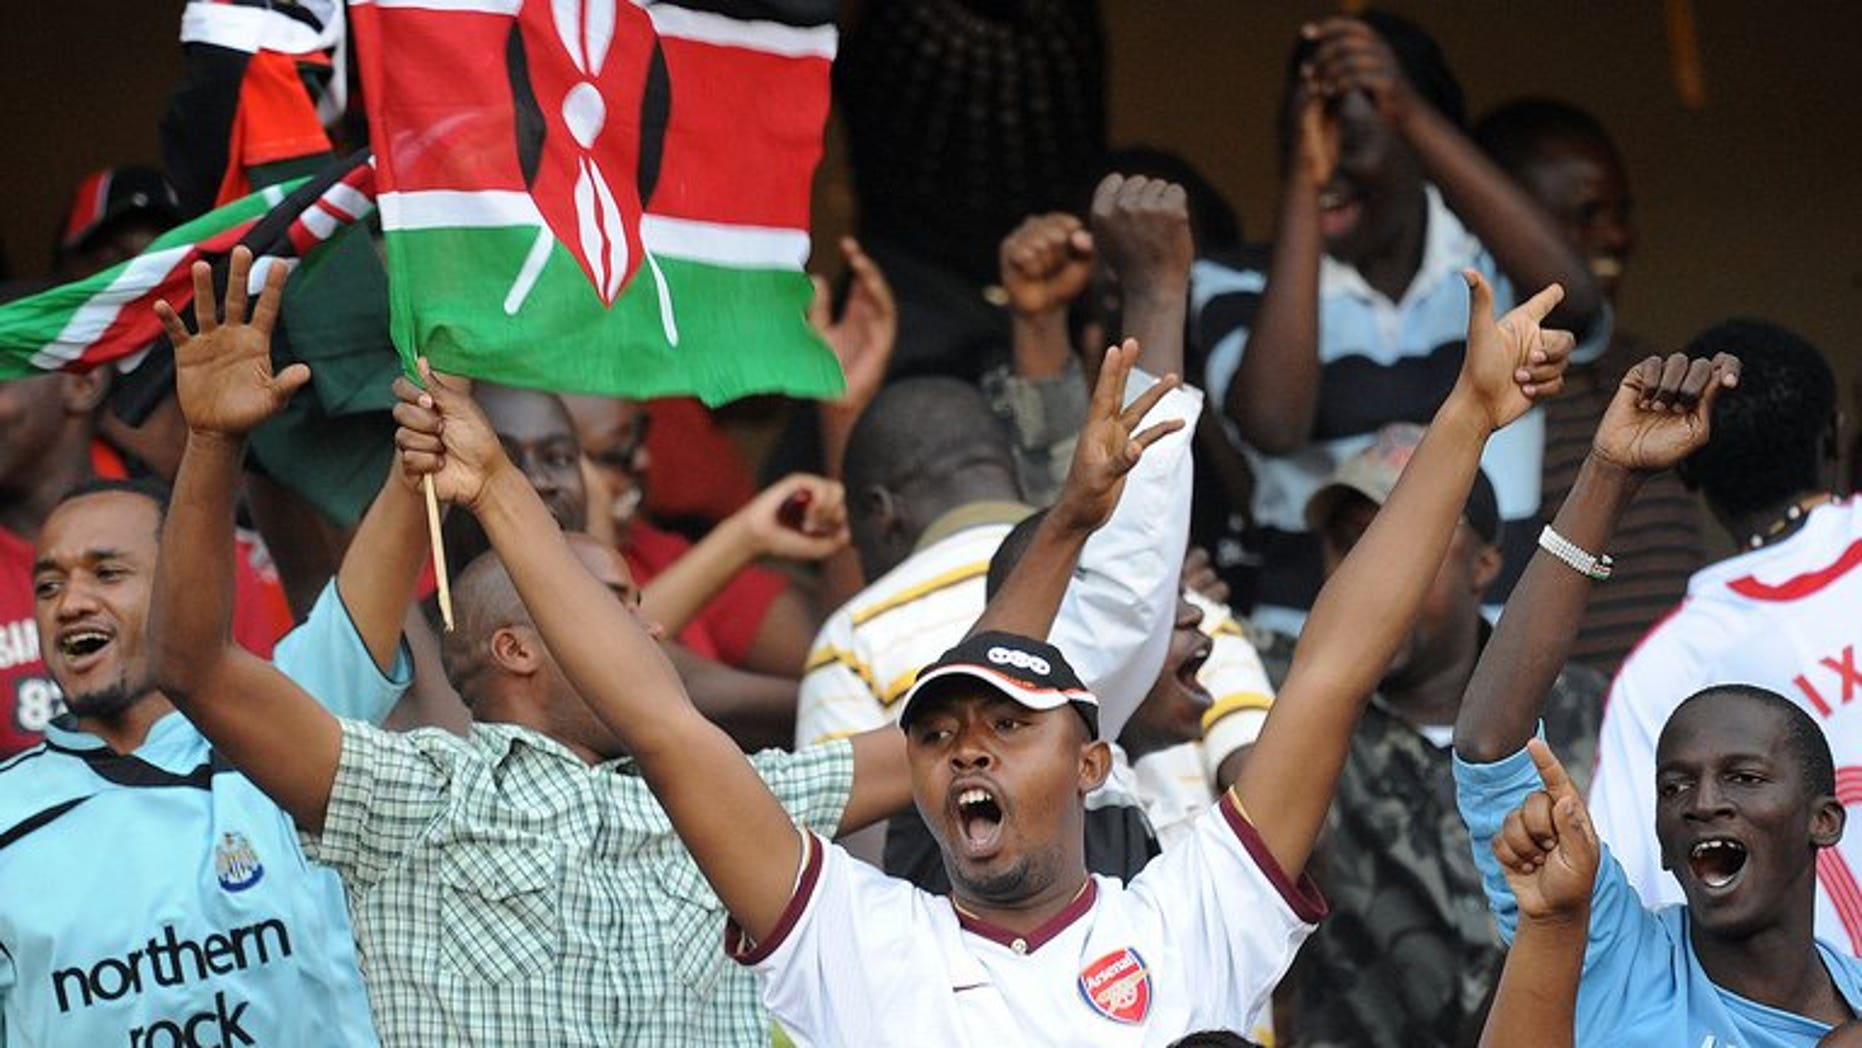 Kenyan soccer fans celebrate at the Moi International Sports Centre Kasarani in Nairobi on November 14, 2009. An Edwin Lavatsa brace gave Kenya a 2-0 win over Swaziland Tuesday and top place in Group B of the Cosafa Cup.